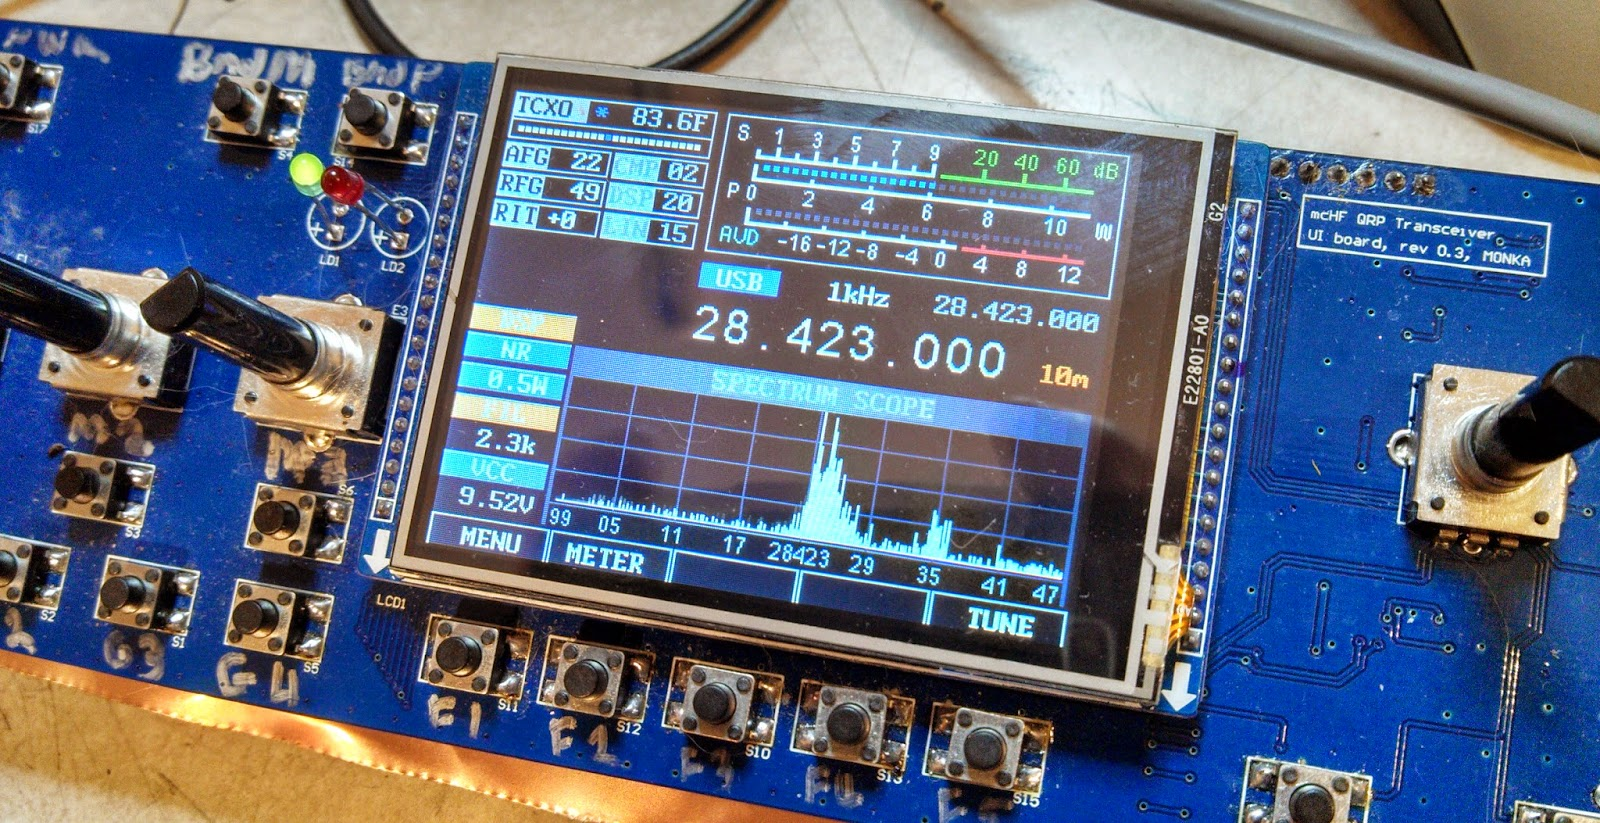 Ka7oeis Blog March 2015 Pin Subwoofer Filter Crossover 11 90 Hz Frequency Circuit On Pinterest Update The Mchf Adding More Features Part 2 Implementing Audio Filters And Fractional I Q Phase Adjustments